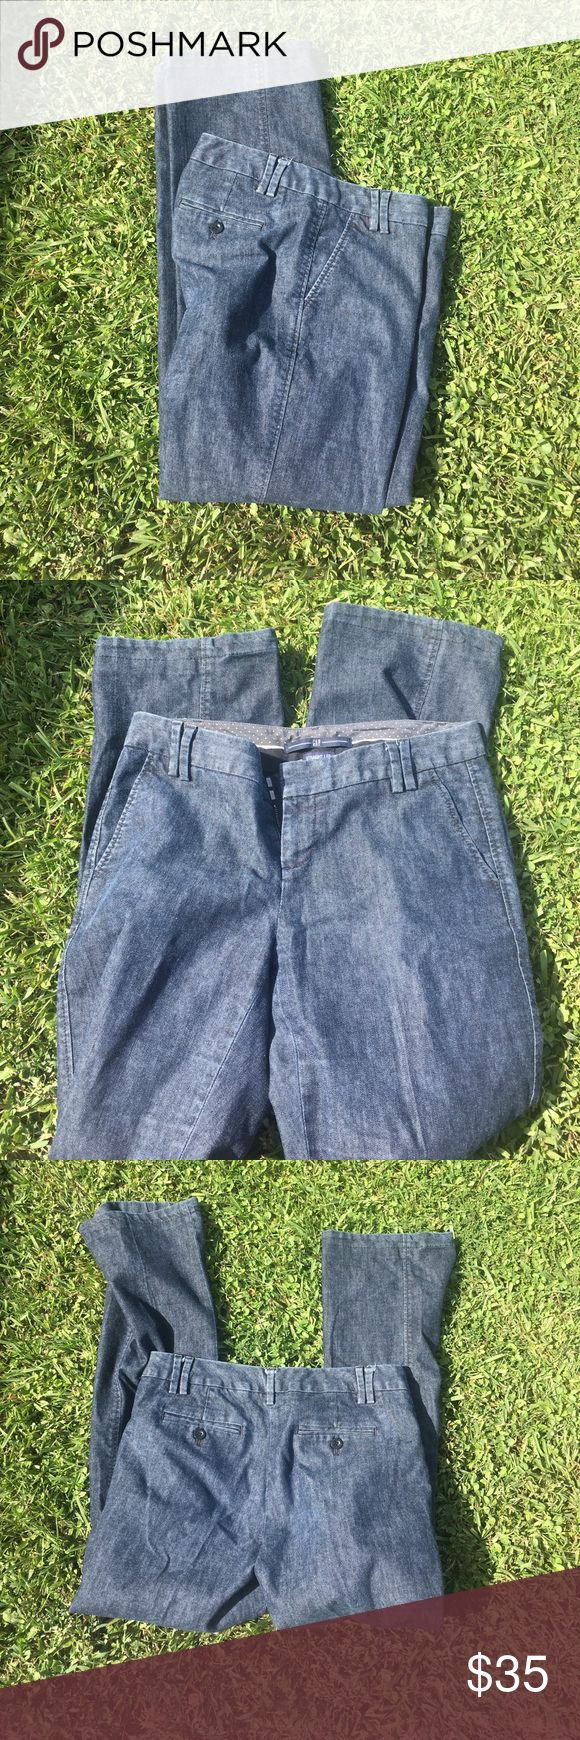 Gap Straight Leg Stretch Jeans Excellent condition. Dark denim. Worn handful of times. Straight leg. Has a stretch material. Stylish look. GAP Jeans Straight Leg